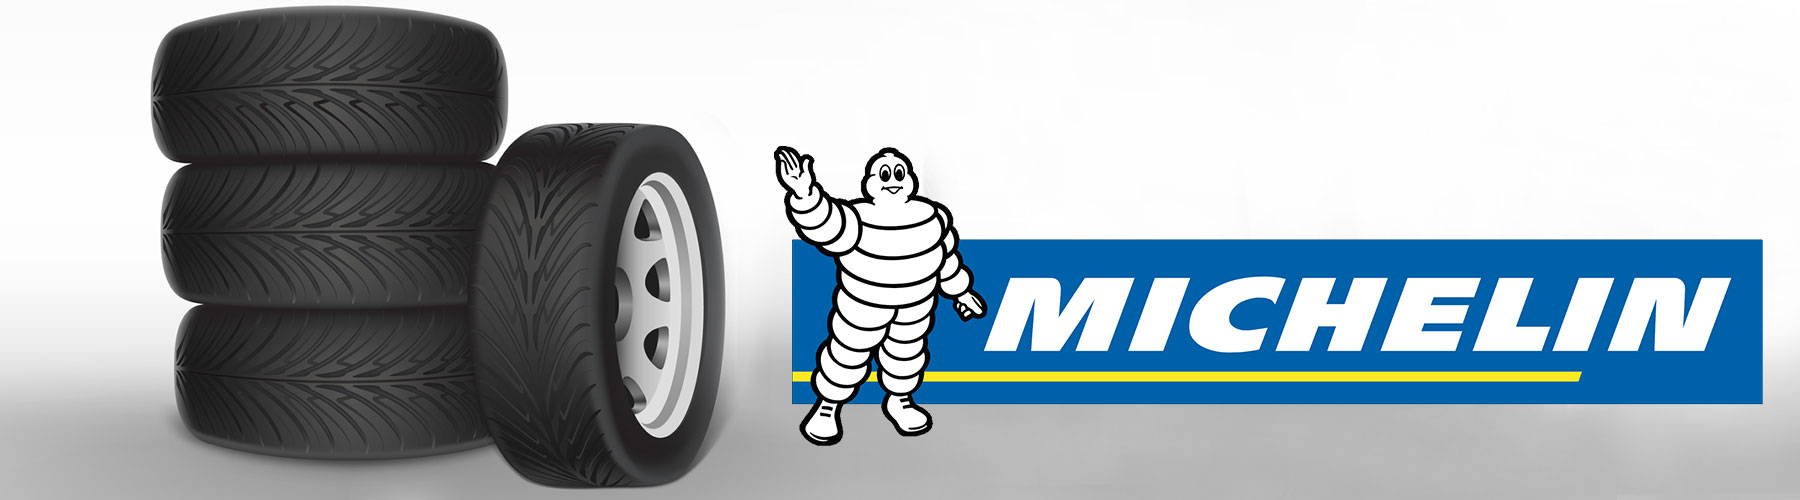 Michellin logo with Tyres image